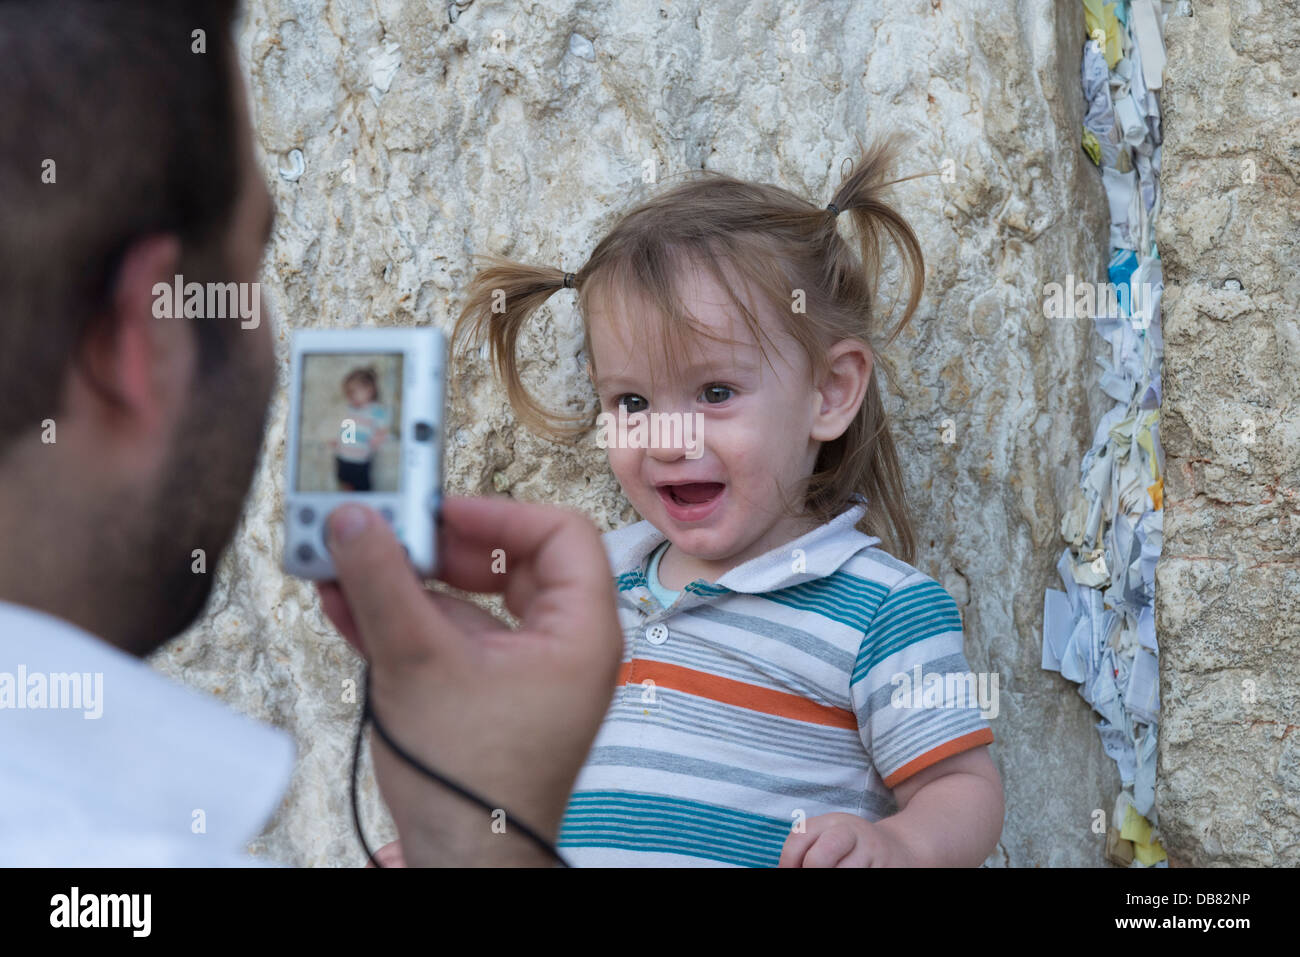 Young toddler pausing and being photographed. Western Wall. Jerusalem Old City. Israel. - Stock Image